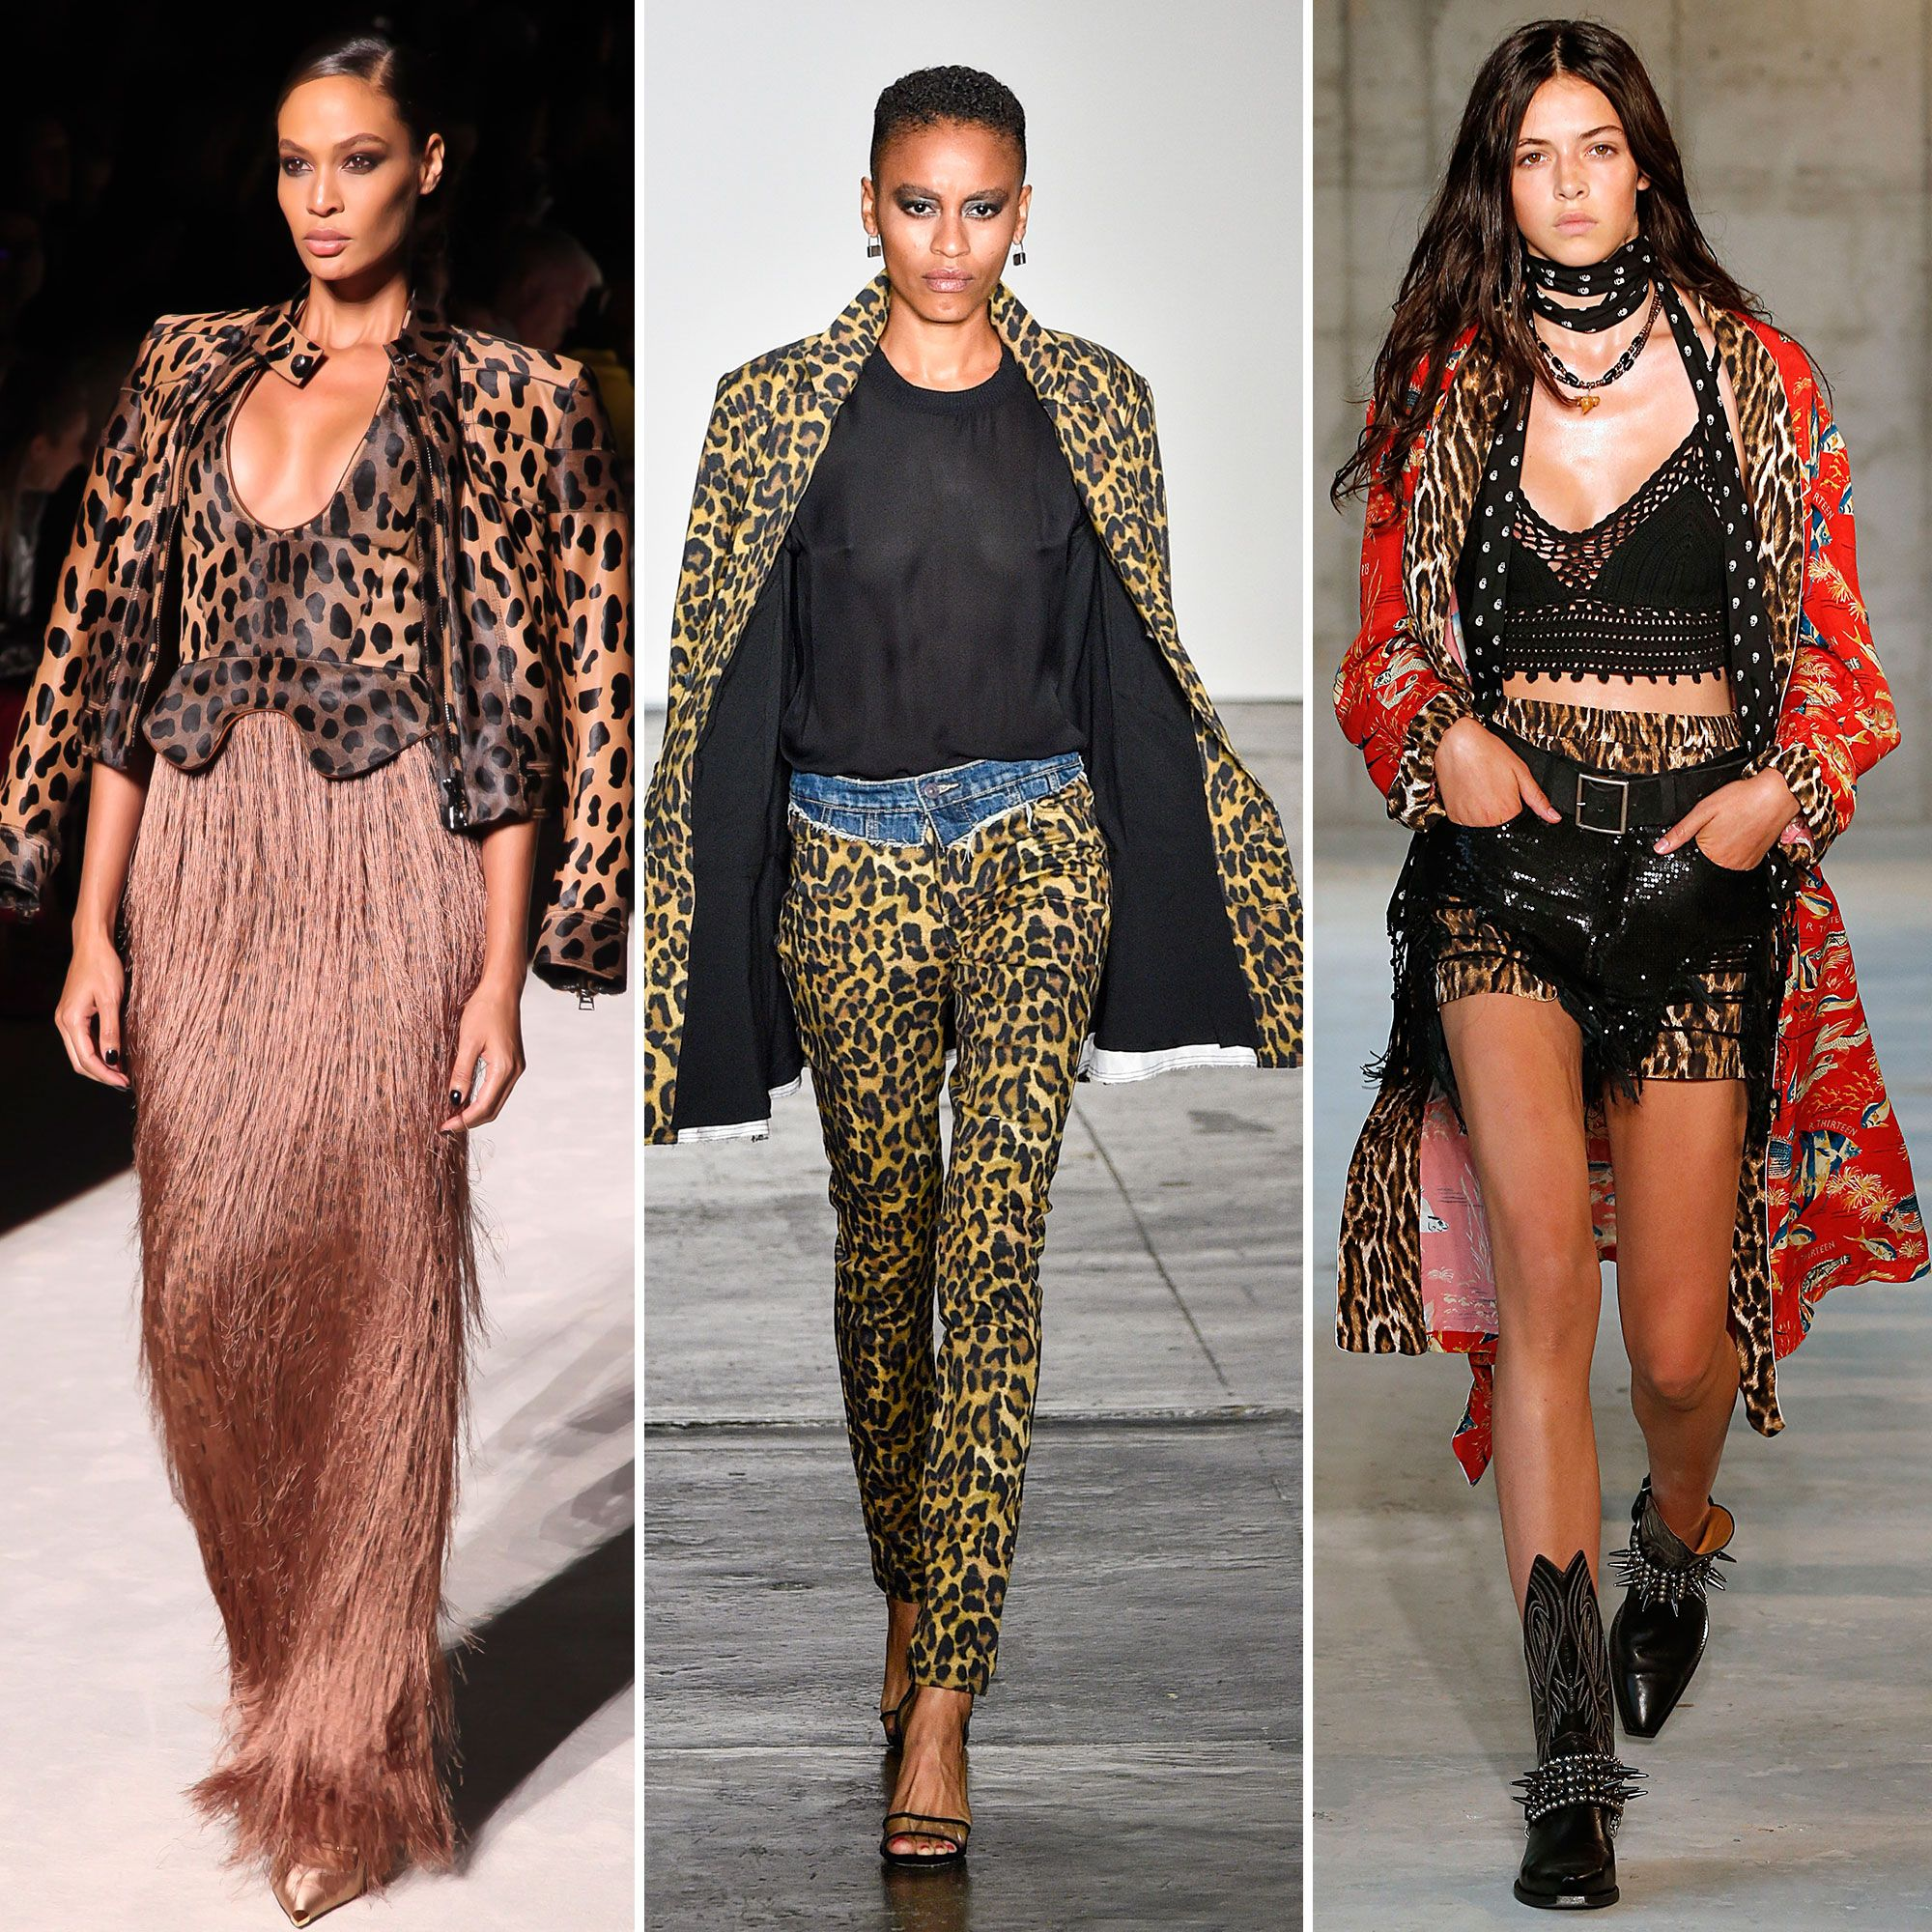 Spring/summer fashion trends 2019 - animal print